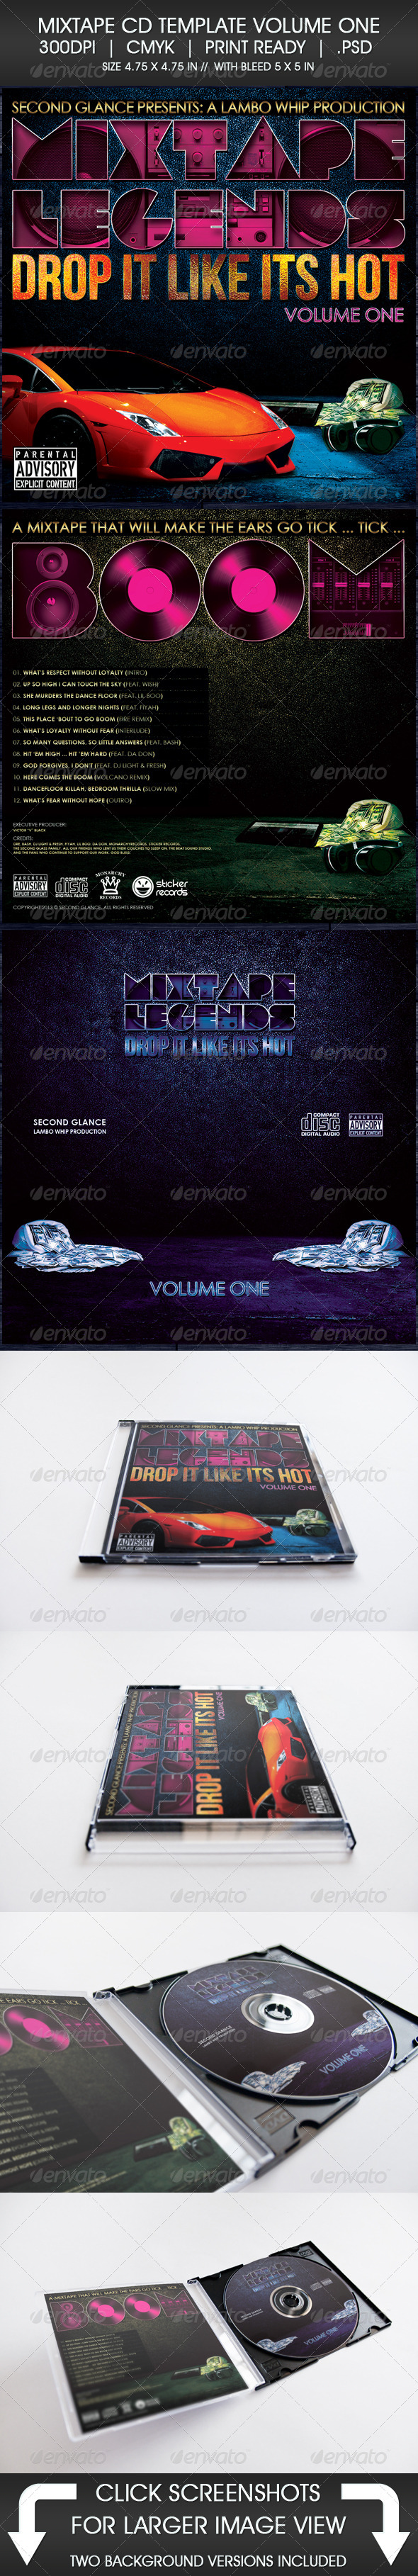 GraphicRiver Mixtape CD Template Volume One 5330188